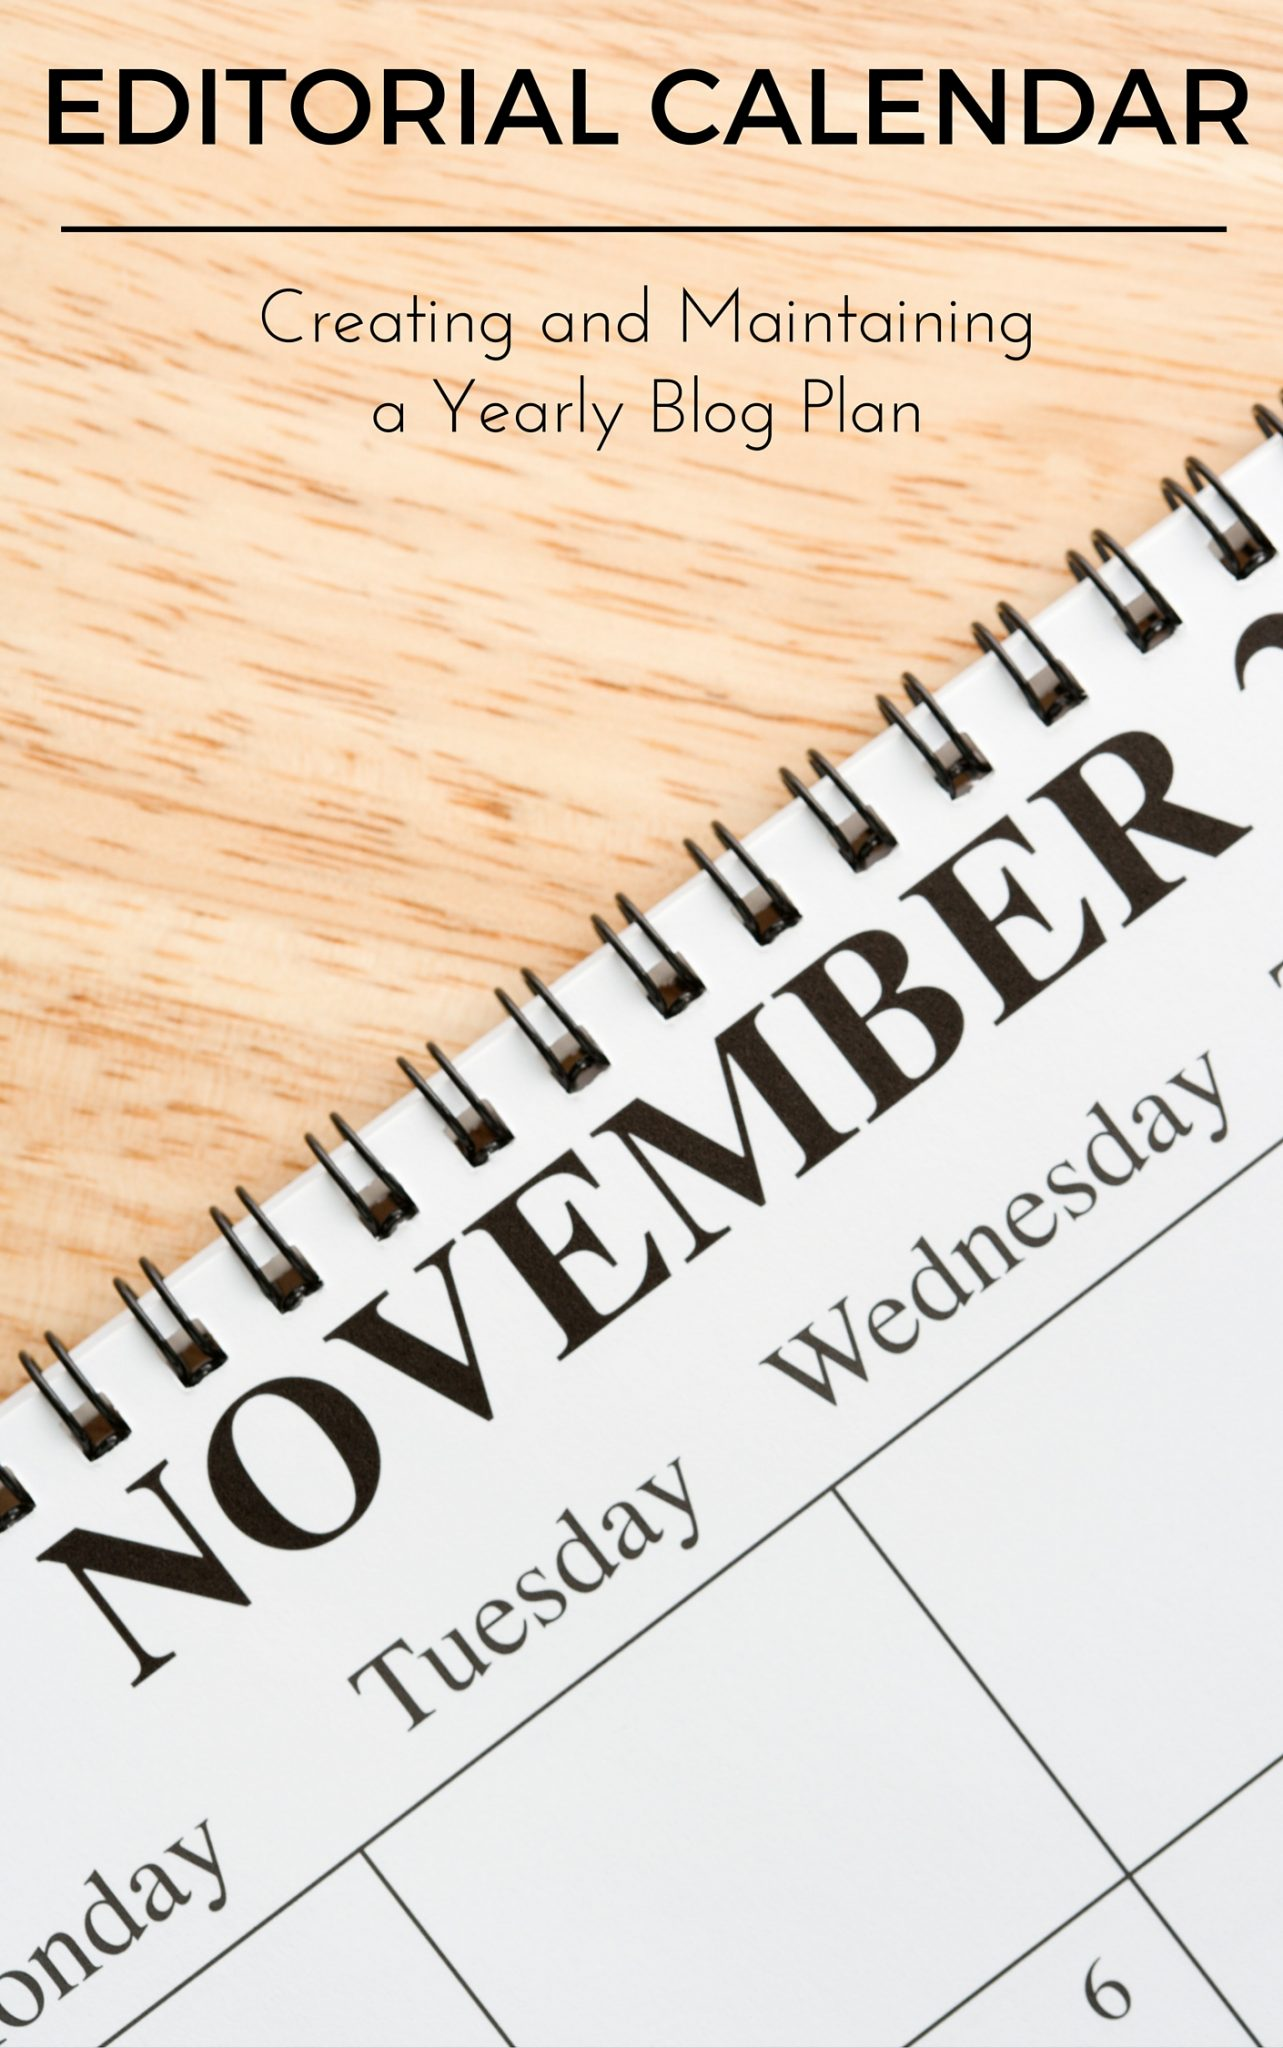 Ebook on creating and maintaing a yearly editorial calendar for your blog. A tried and true method that anyone can learn and implement for a more organized blog schedule.